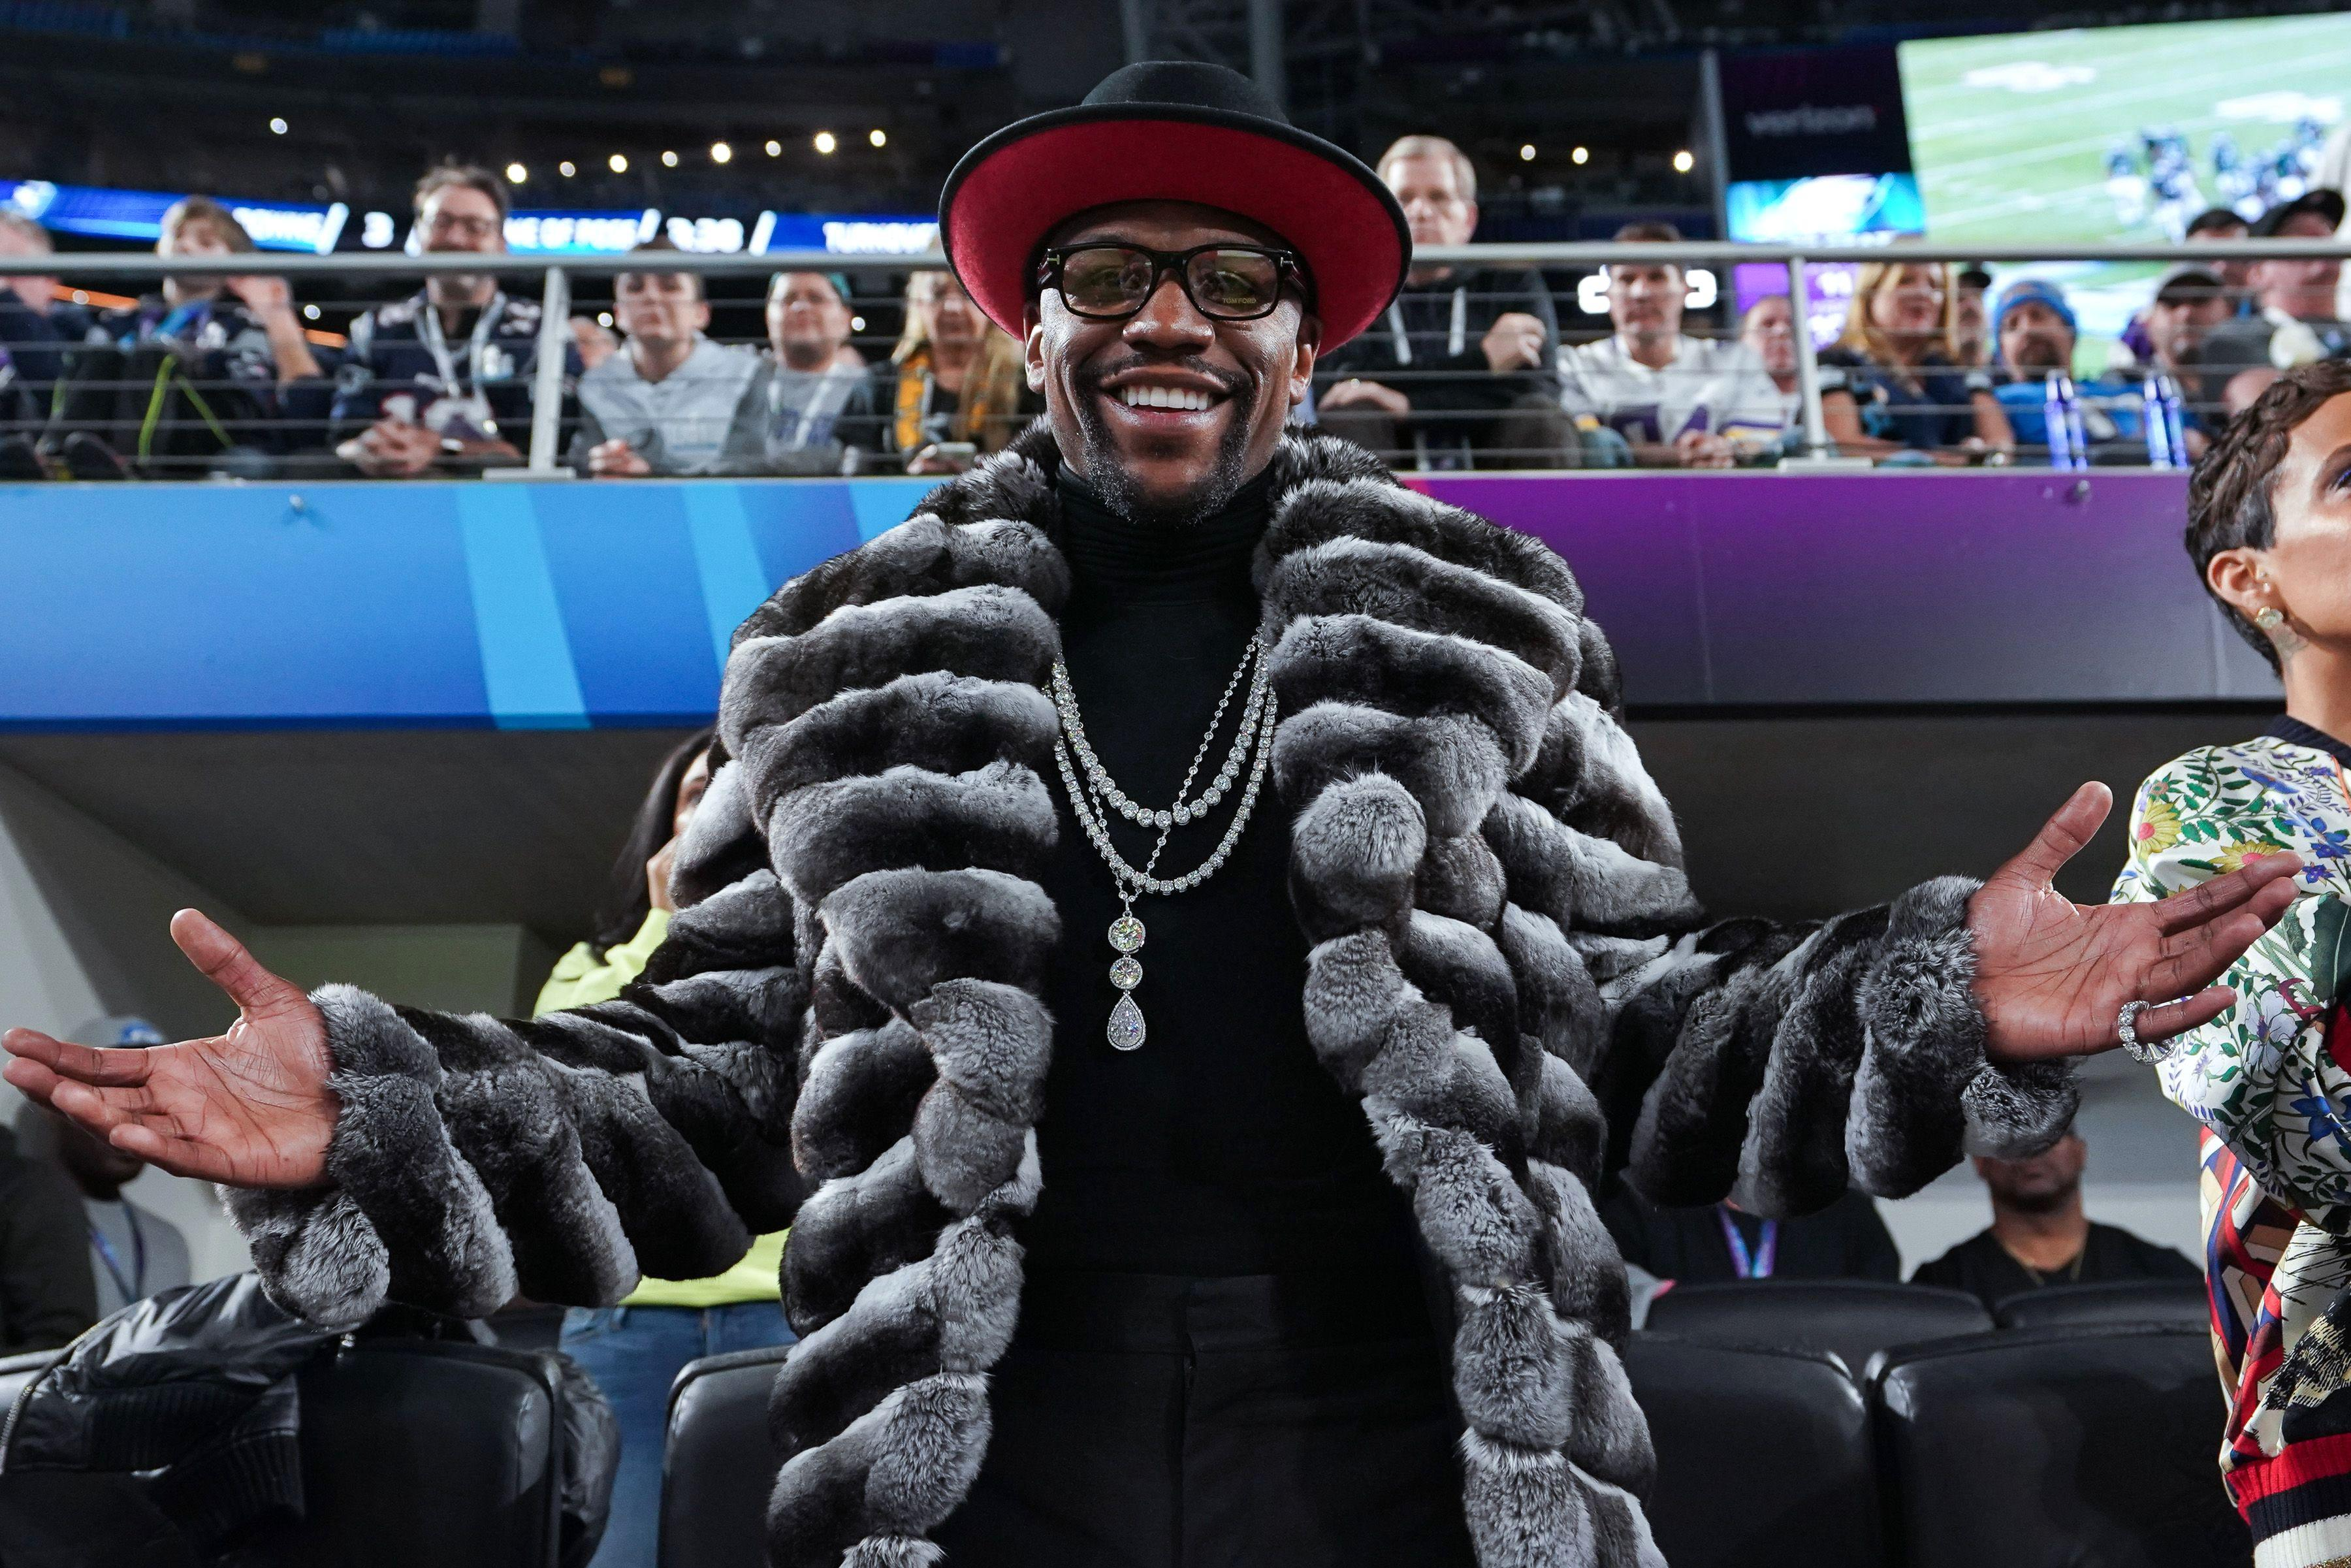 Floyd Mayweather was among the guests in attendance at US Bank Stadium